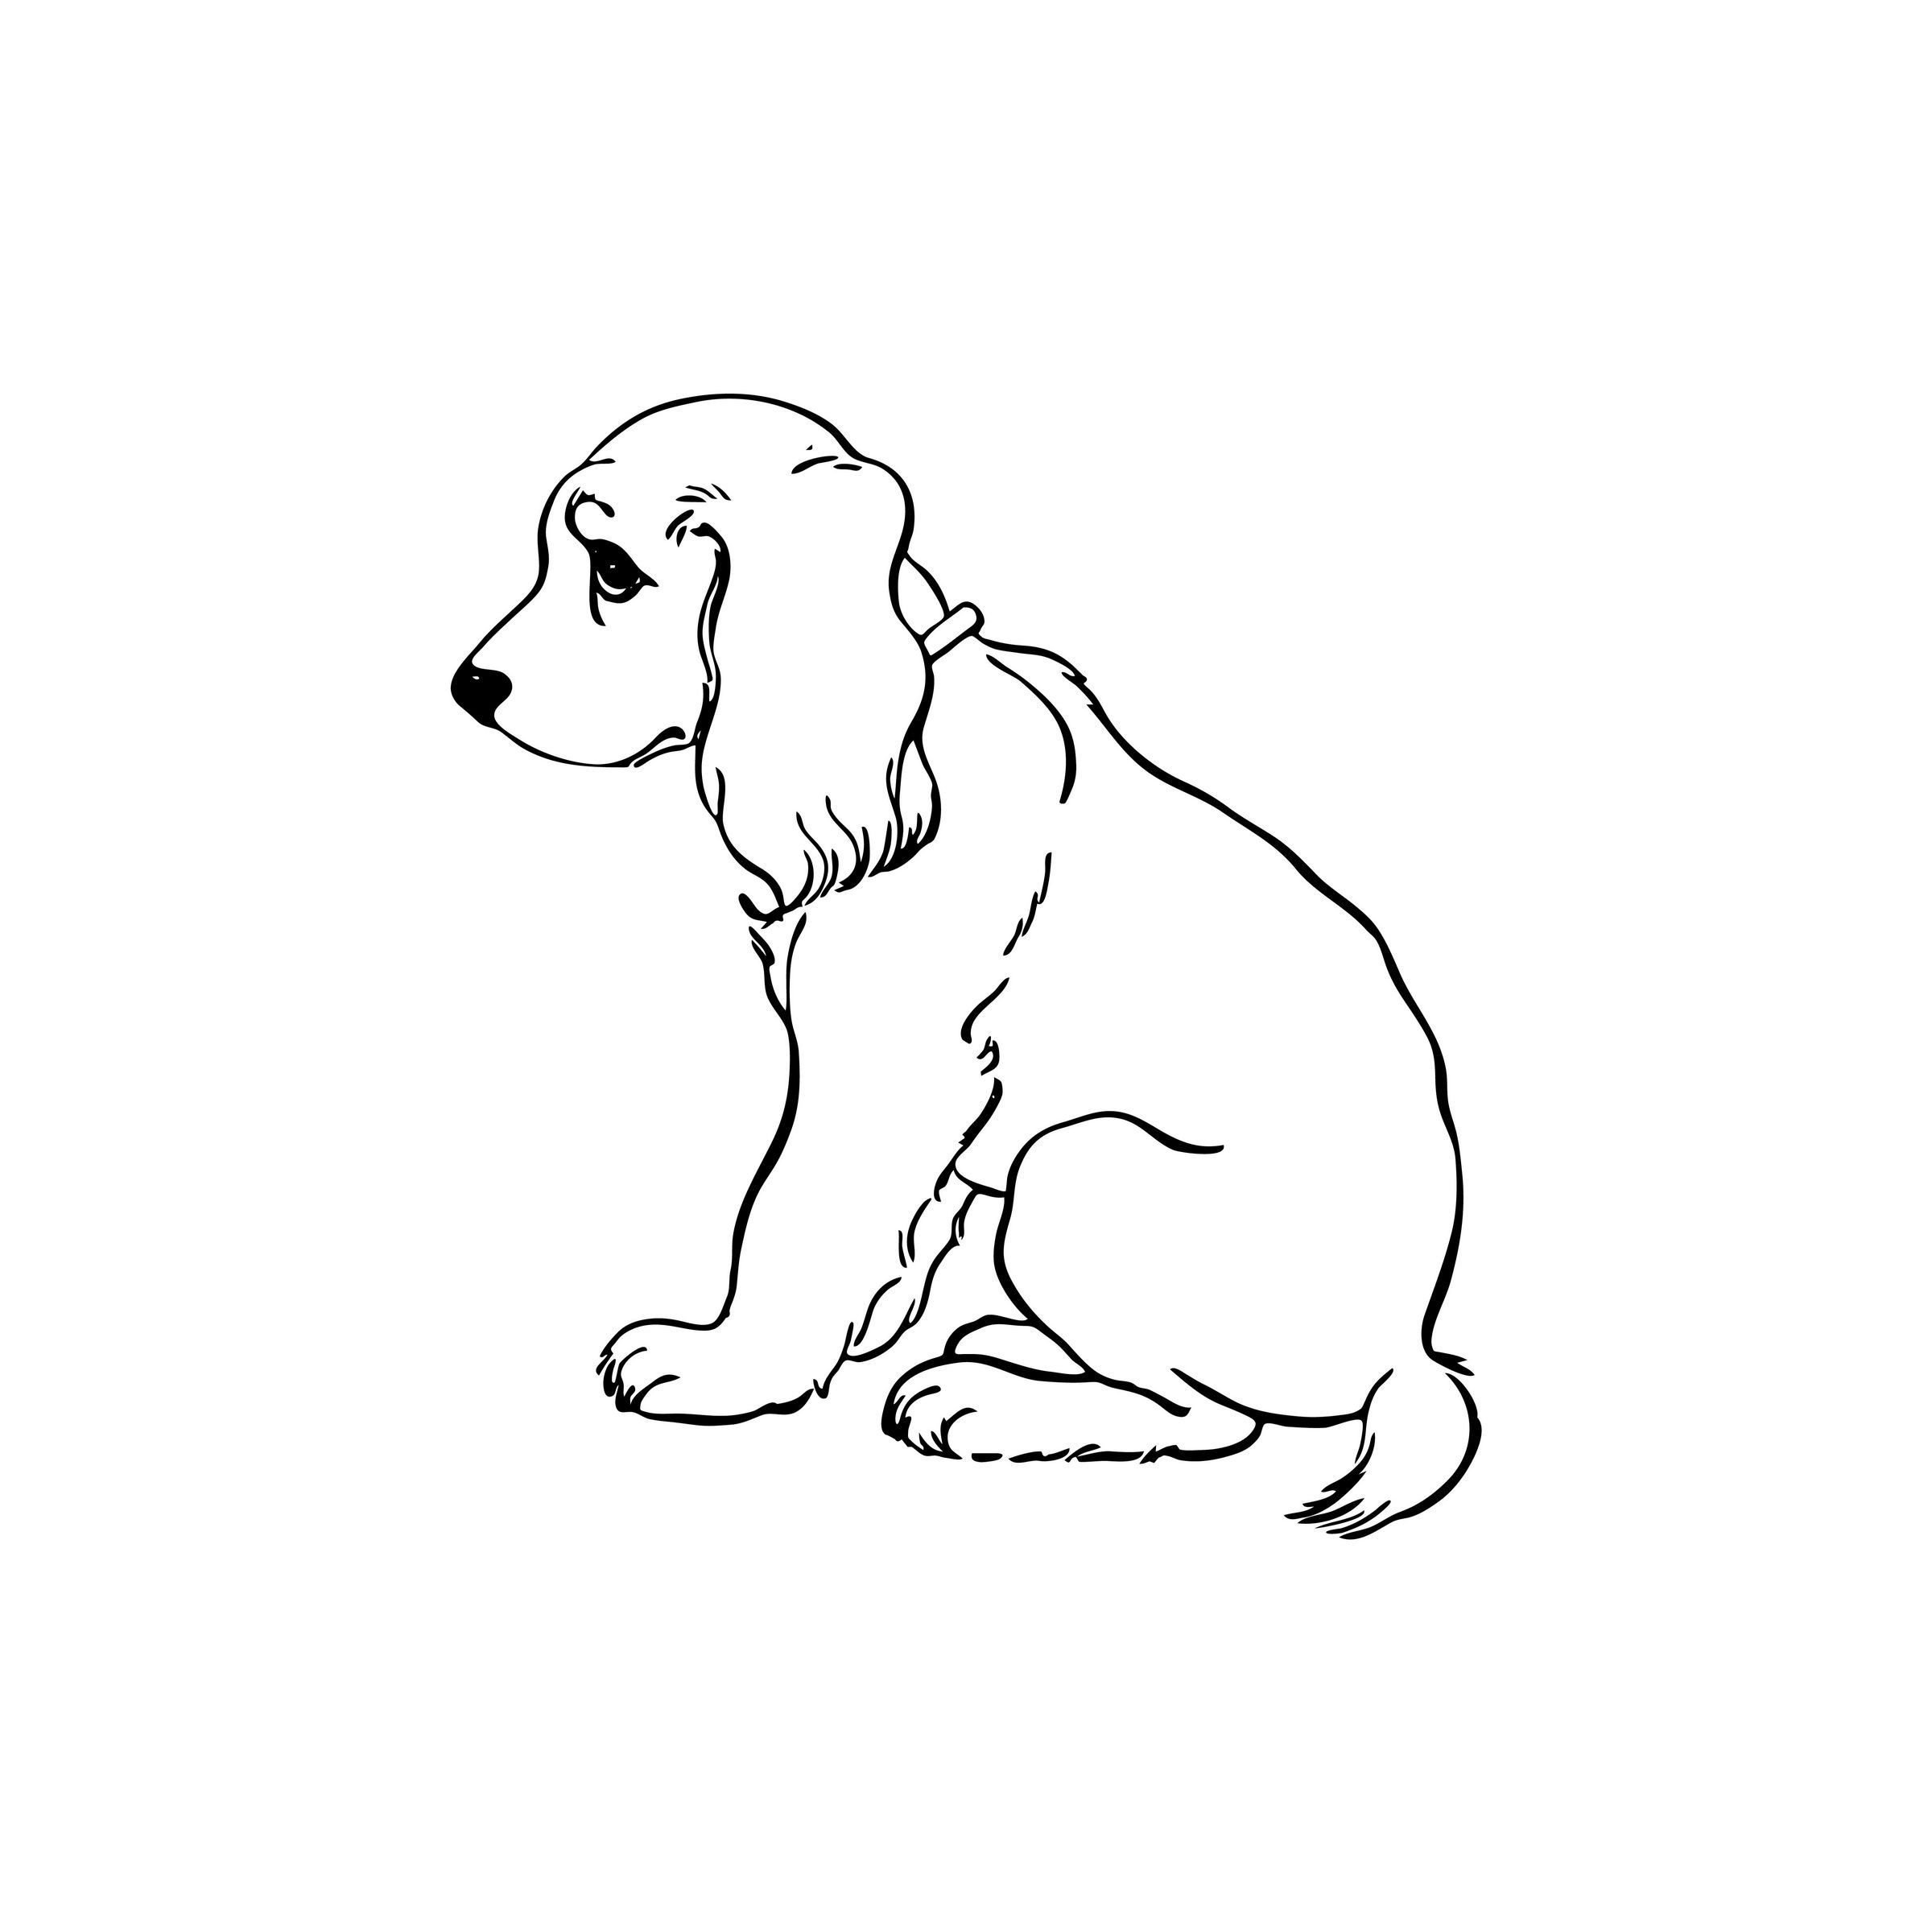 Lost dog Clipart and Stock Illustrations. 342 Lost dog vector EPS  illustrations and drawings available to search from thousands of royalty  free clip art graphic designers.